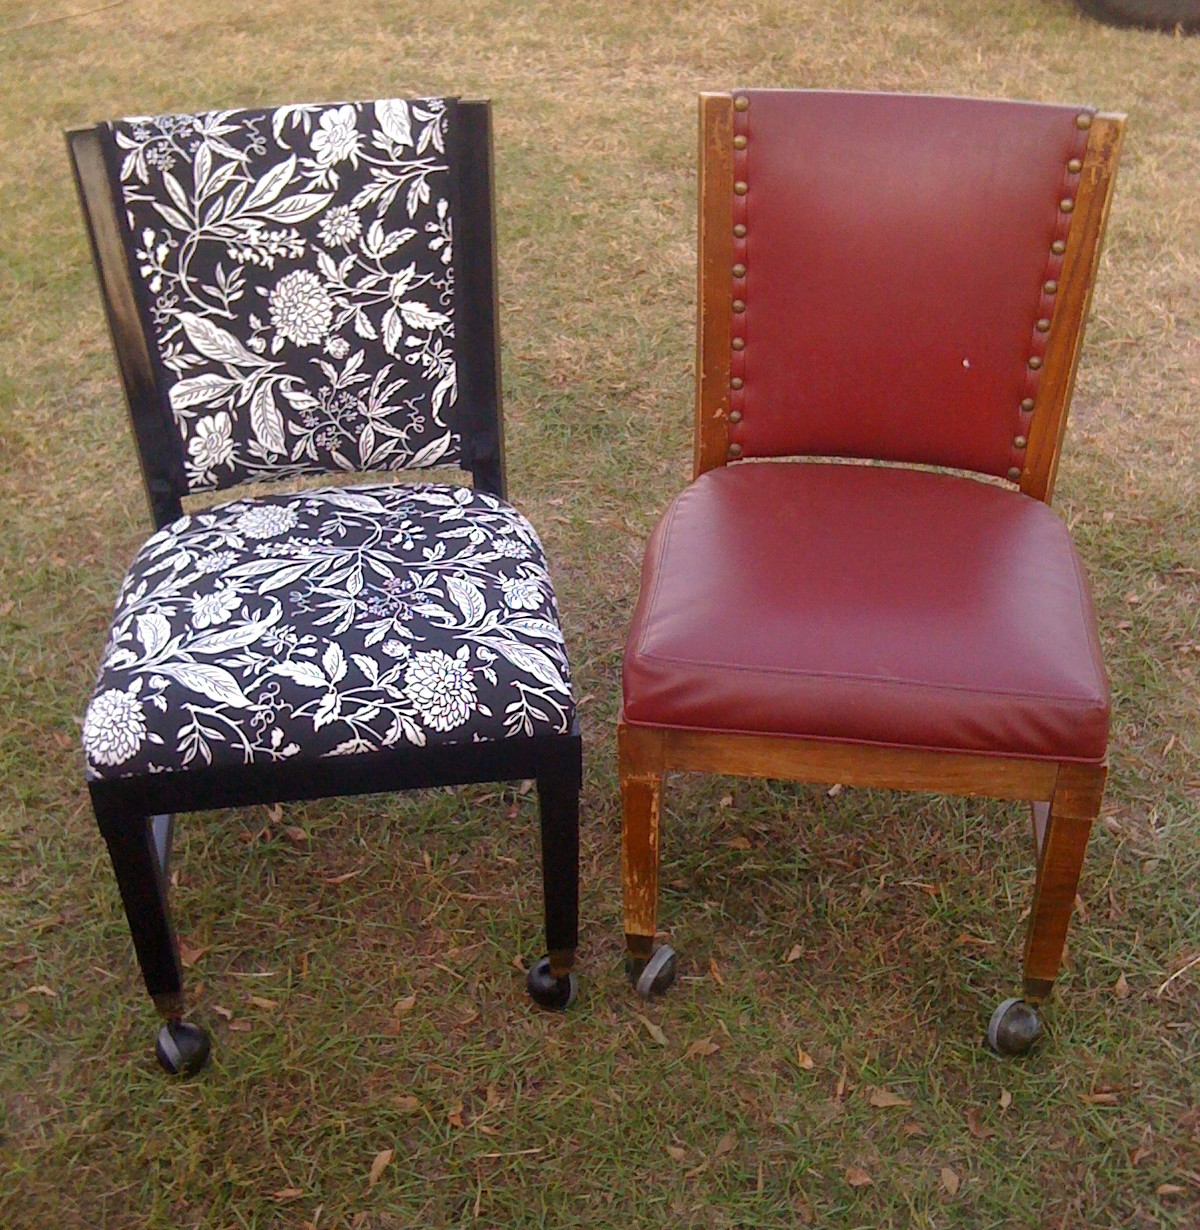 The Funkie Munkie Furniture 2 Chair Reupholstery Projects